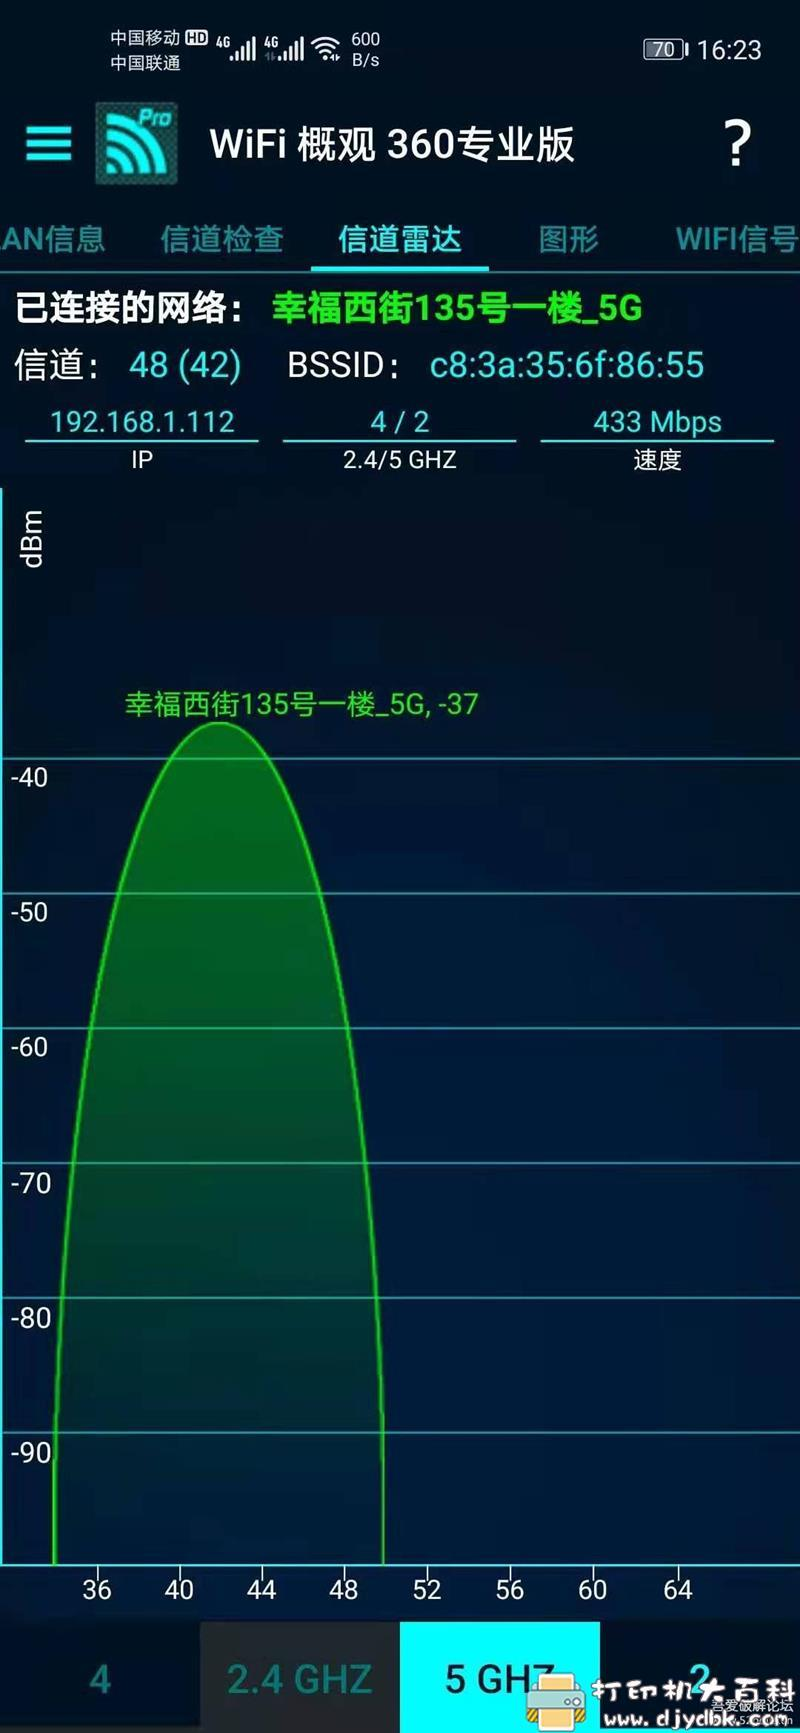 [Android]WIFI概观360专业版4.62.08,附使用教程 配图 No.4